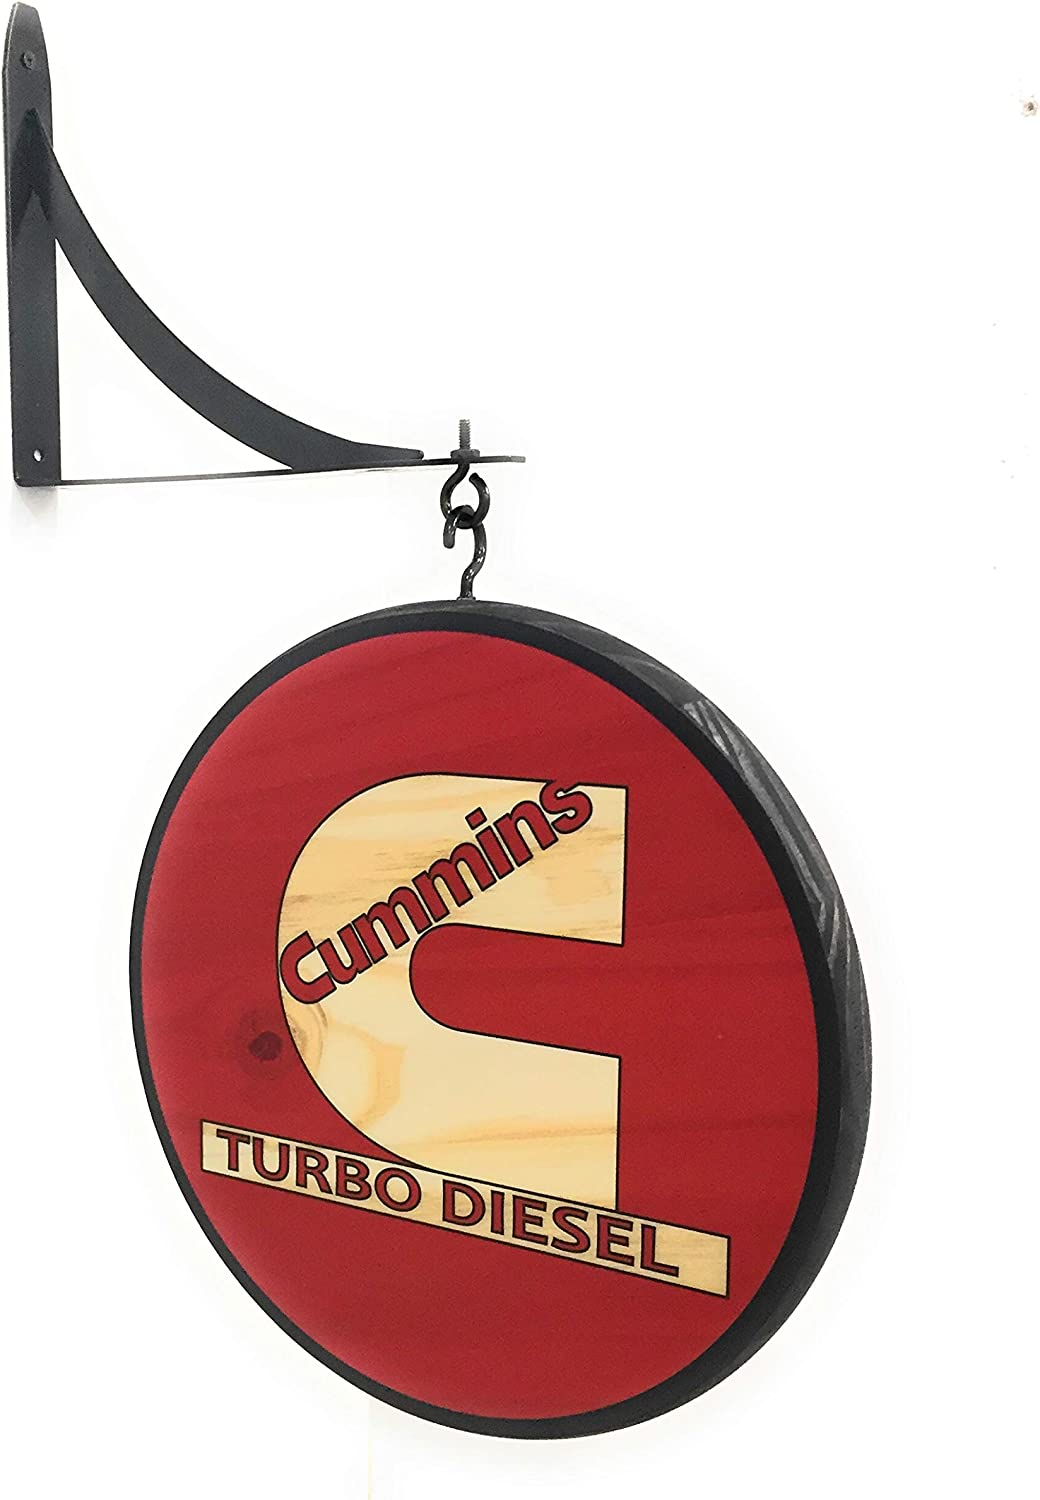 "Cummins Turbo Diesel 12"" Double Sided Pub Sign"